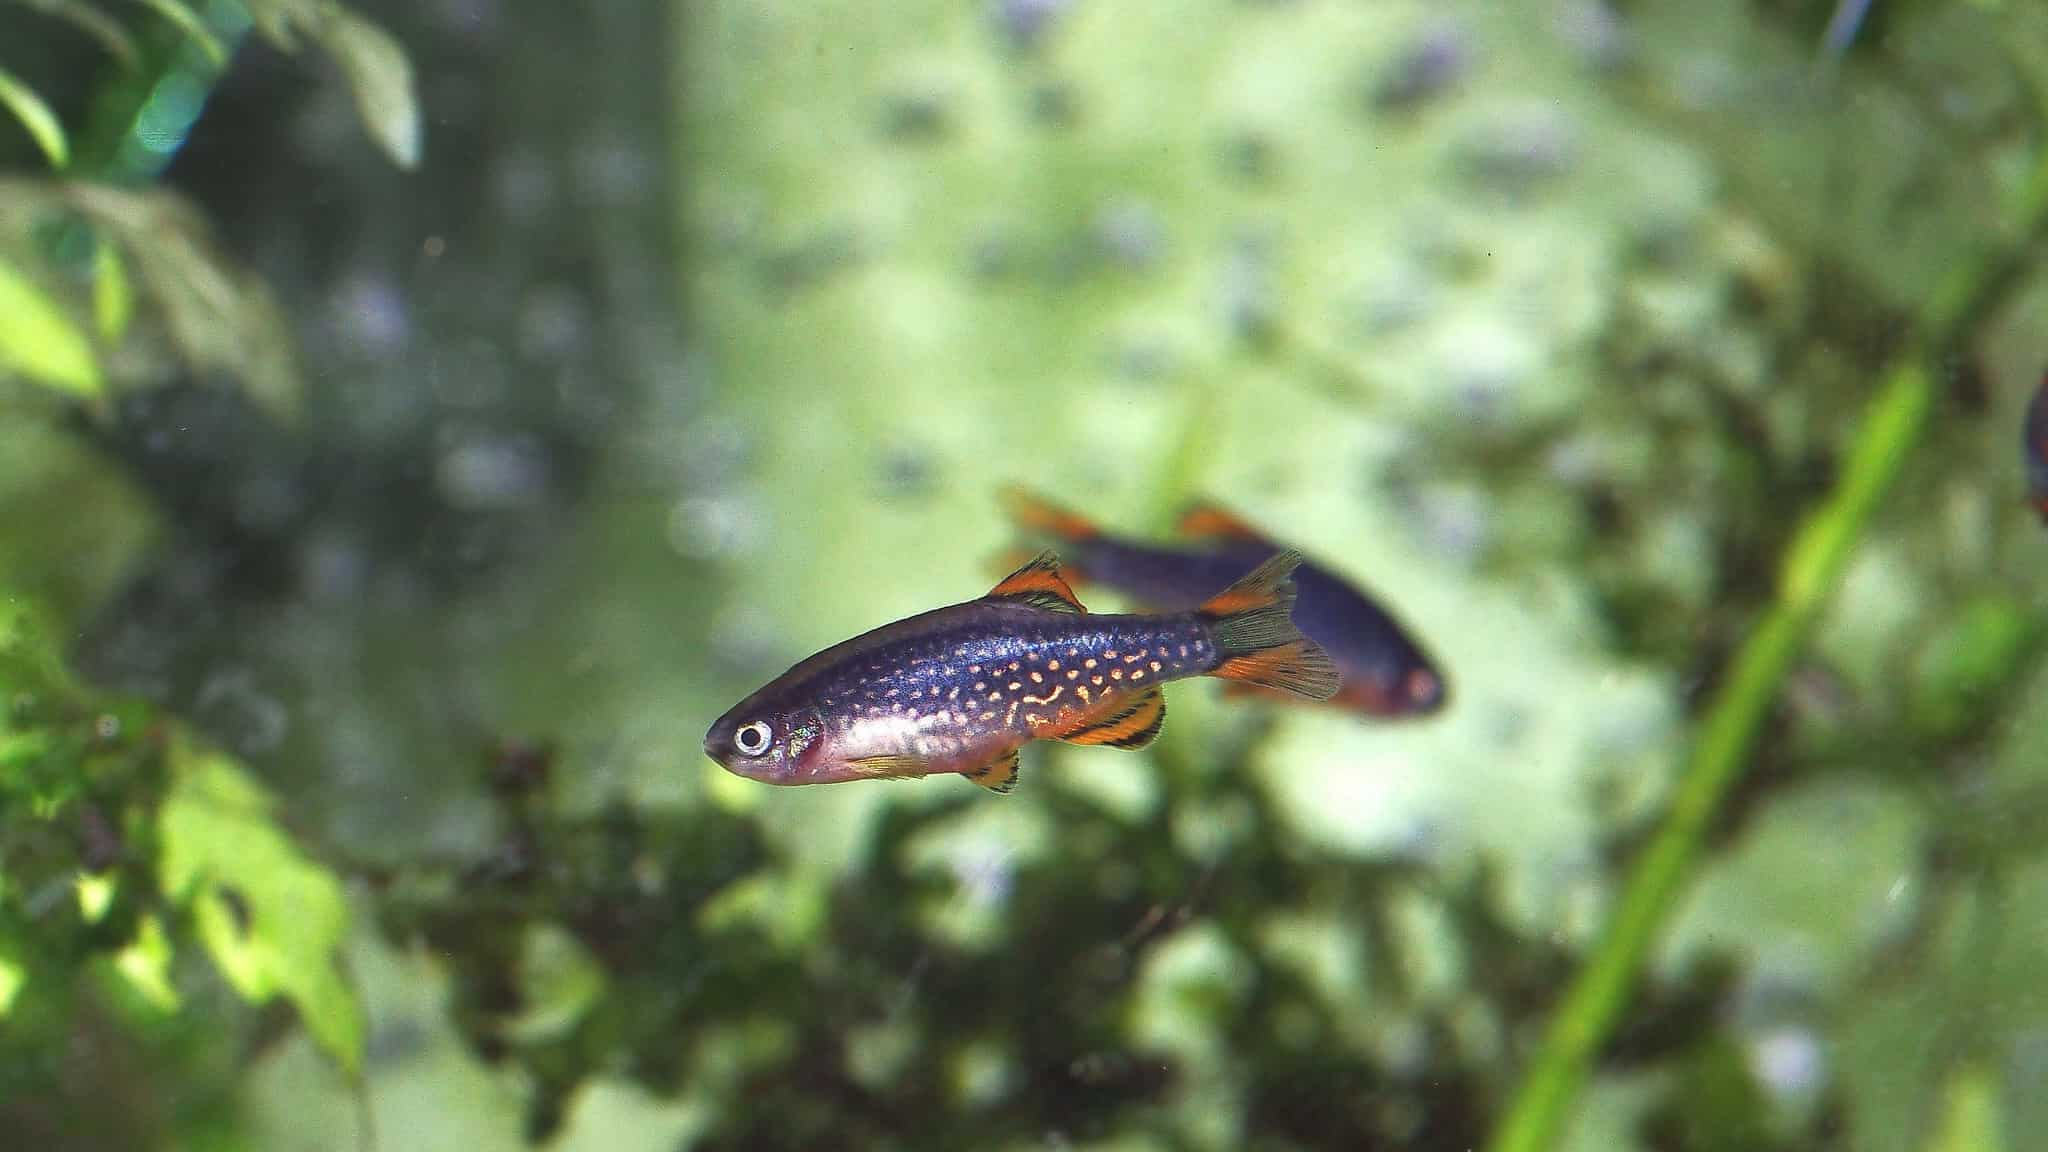 Isolated Celestial Pearl Danio fish in a tank.